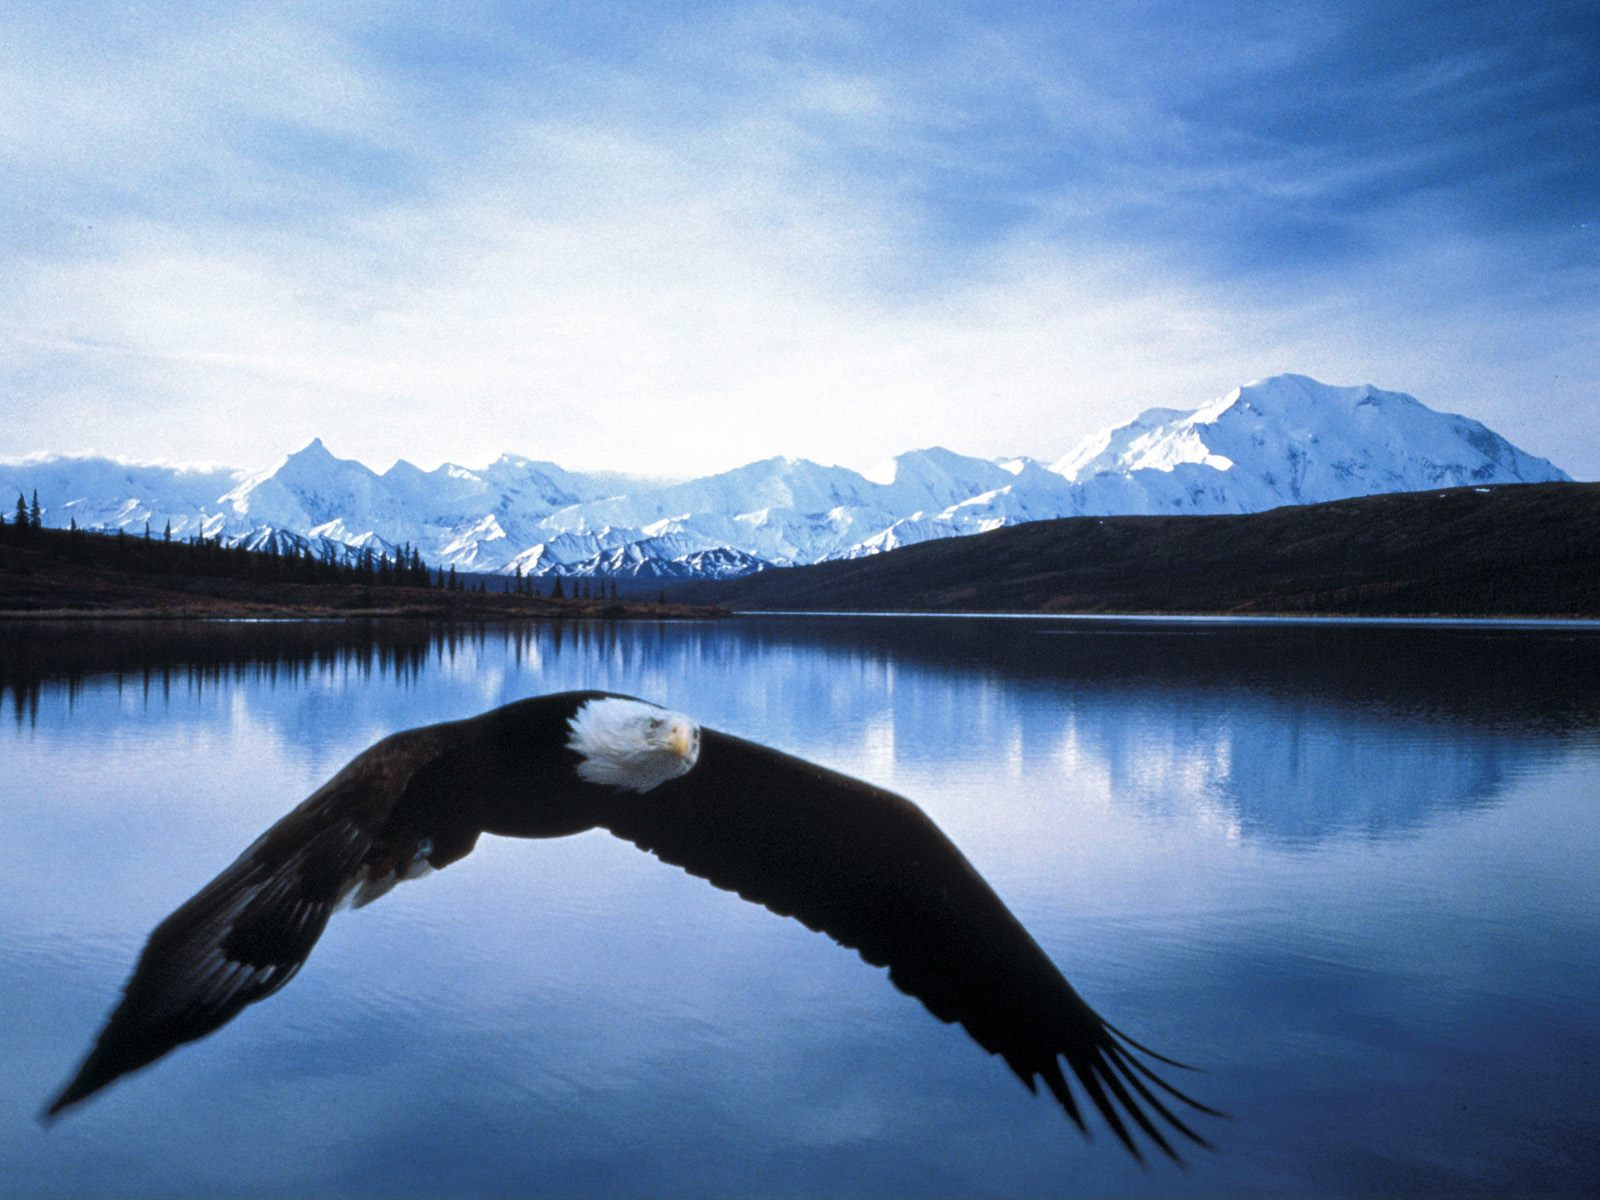 http://3.bp.blogspot.com/-fcpxzbZ7OY0/T_Q2kZ8yqLI/AAAAAAAAD0A/A3kOceSg0Mc/s1600/Bald+eagle+wallpapers+9.jpg